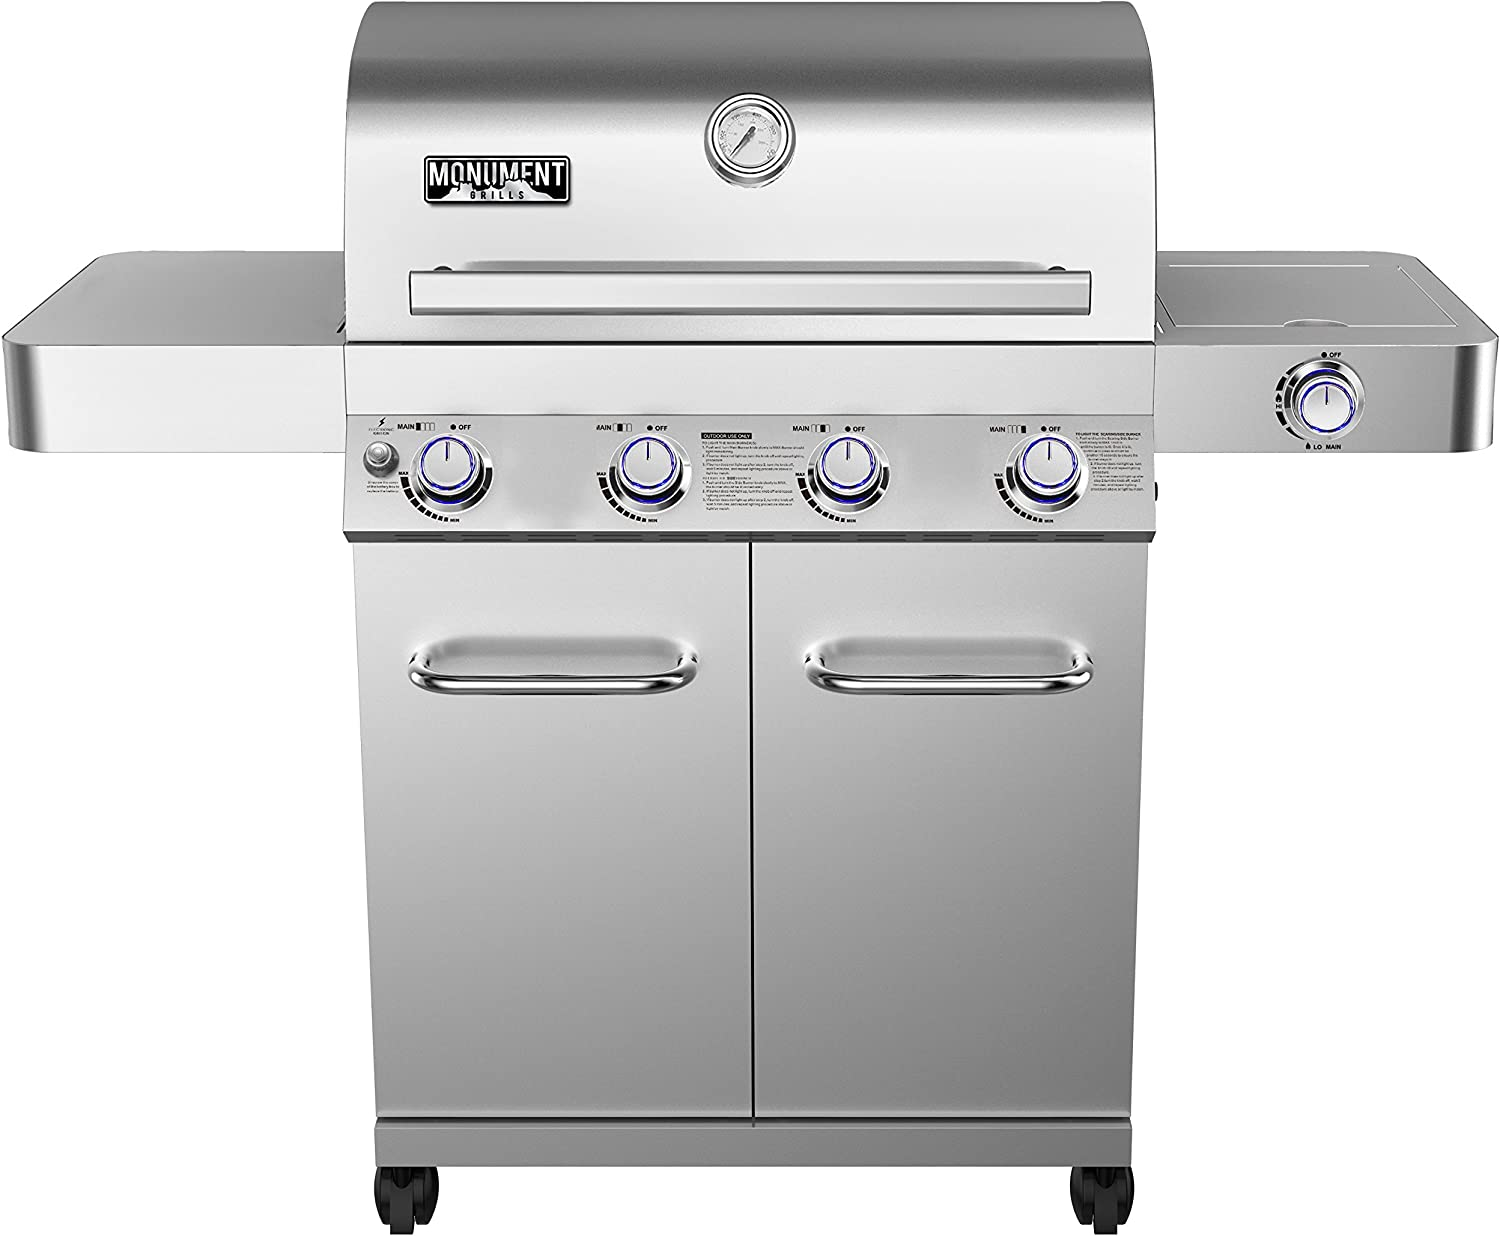 Monument Grills 4-Burner Propane Gas Grill Review